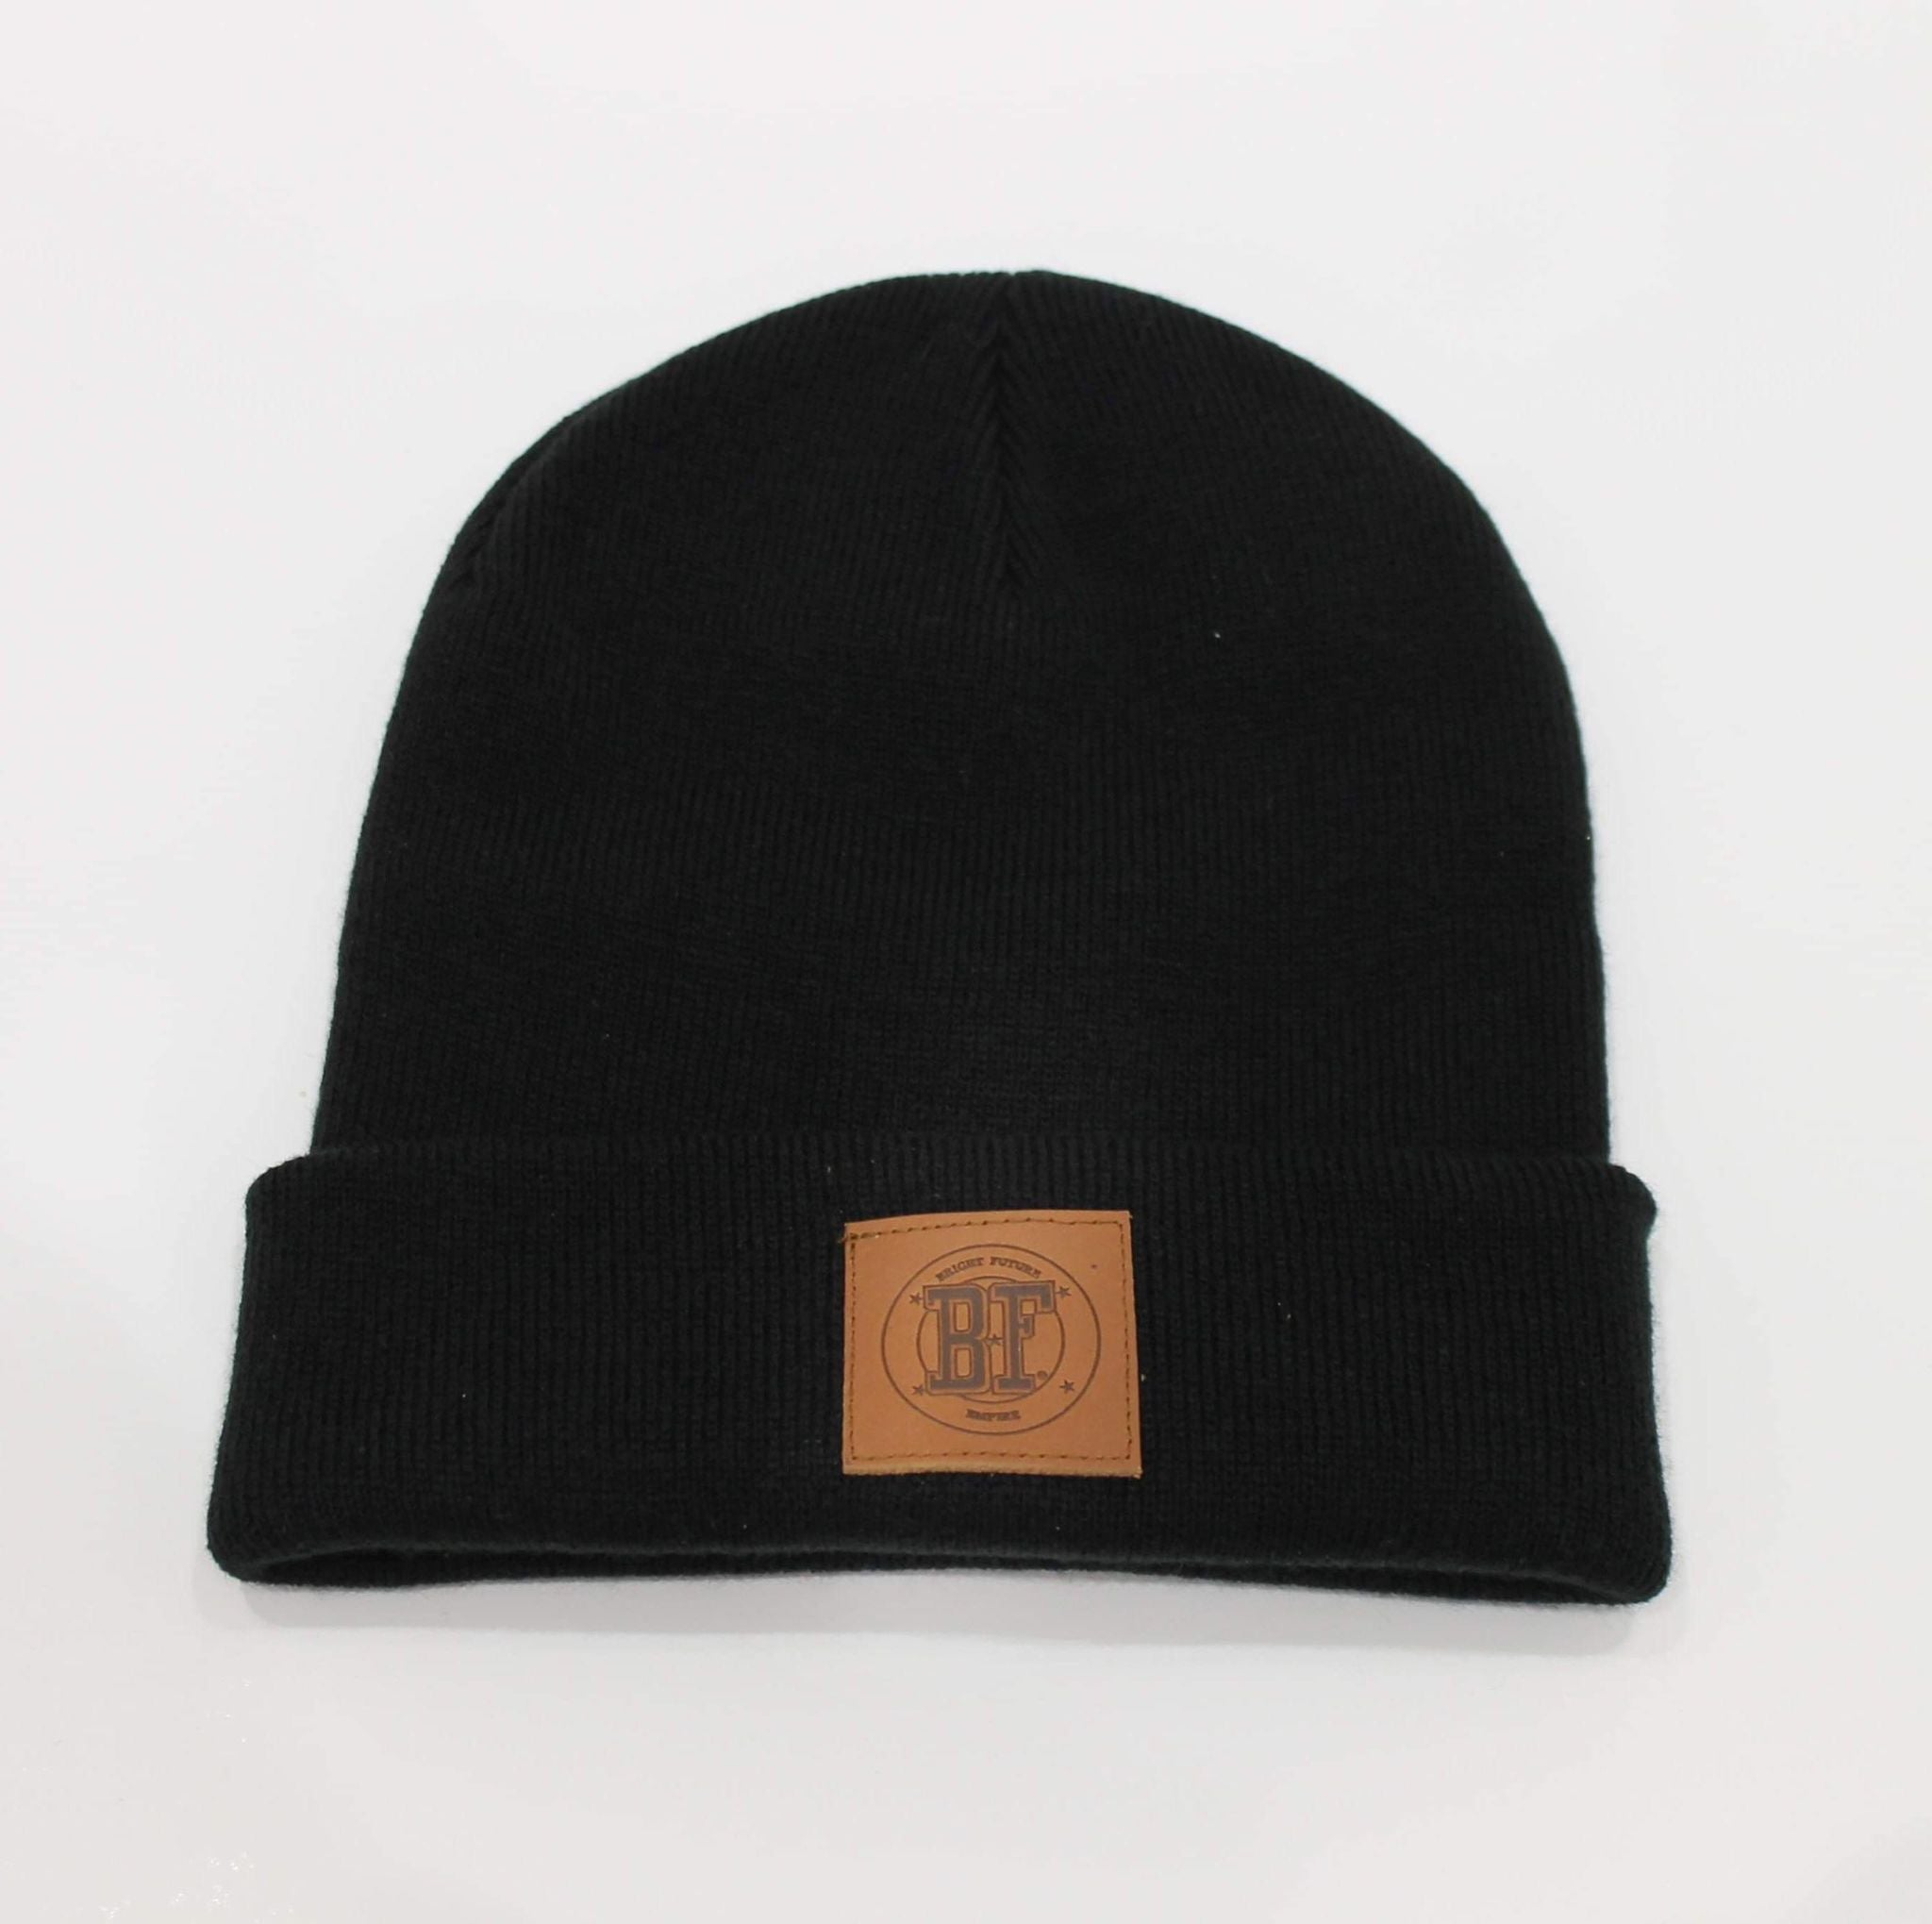 BFE Beanie Leather Patch Black